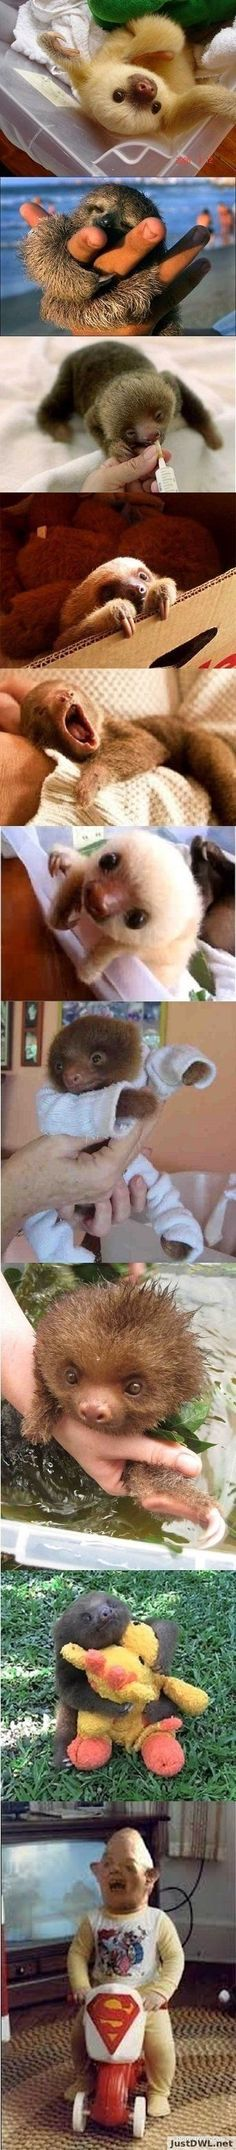 Baby Sloths...